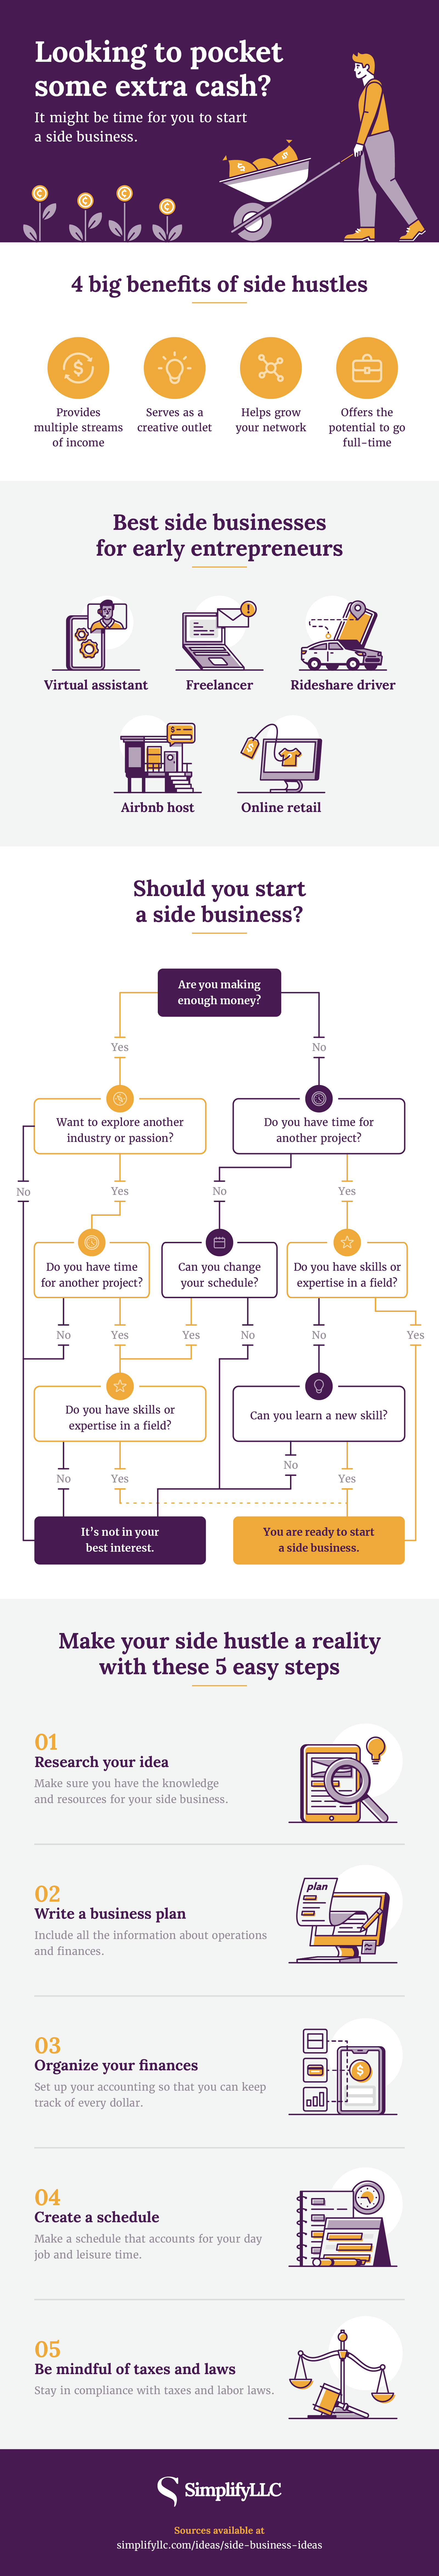 Infographic on side business ideas